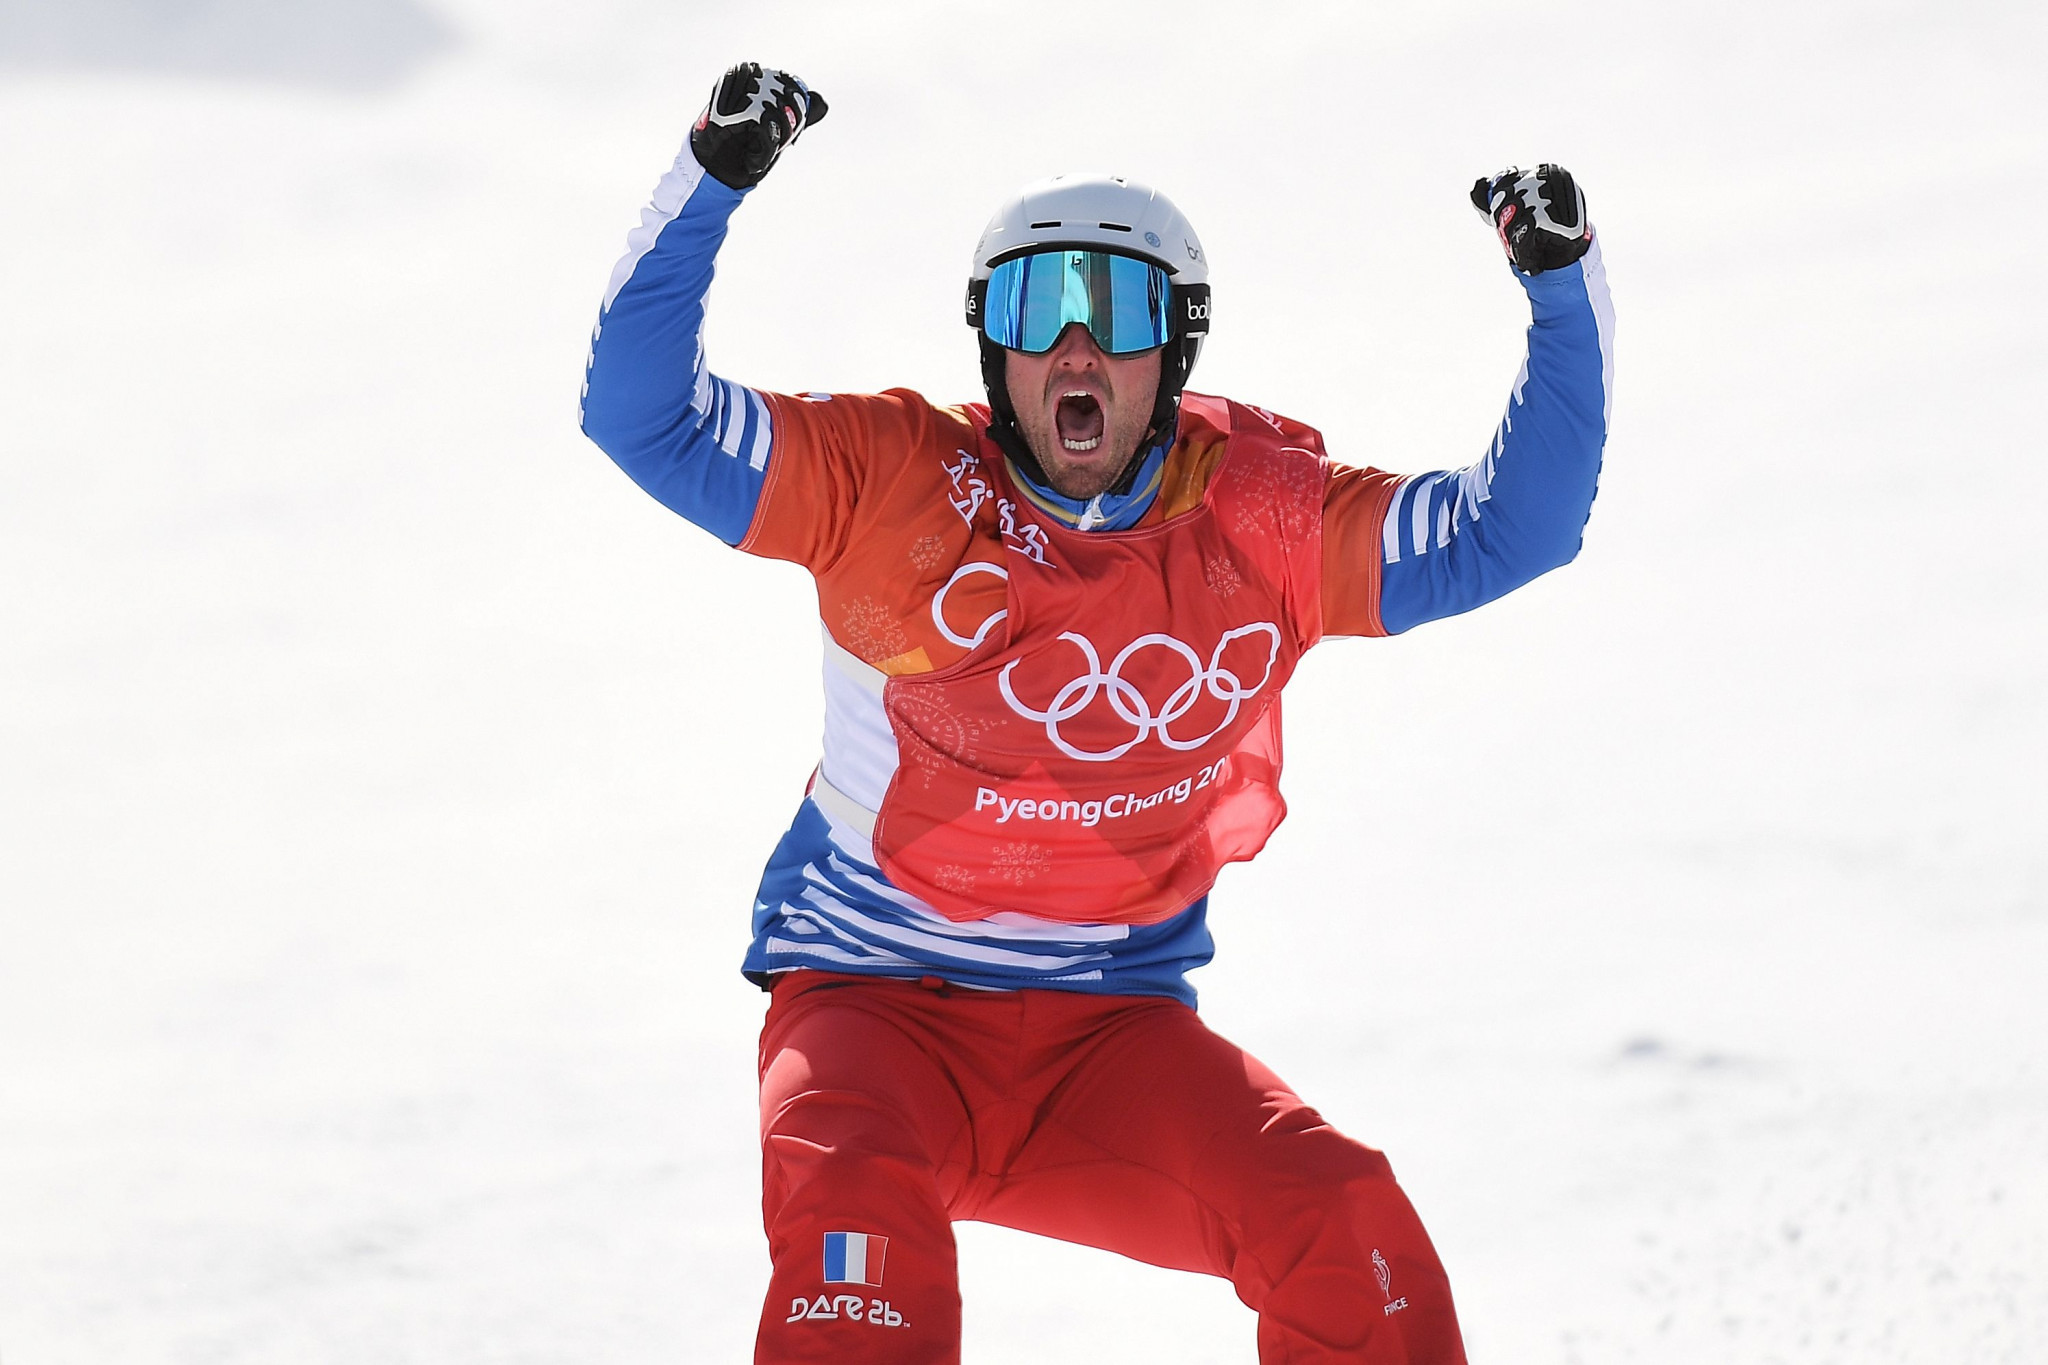 Double Olympic snowboard cross champion Vaultier announces retirement